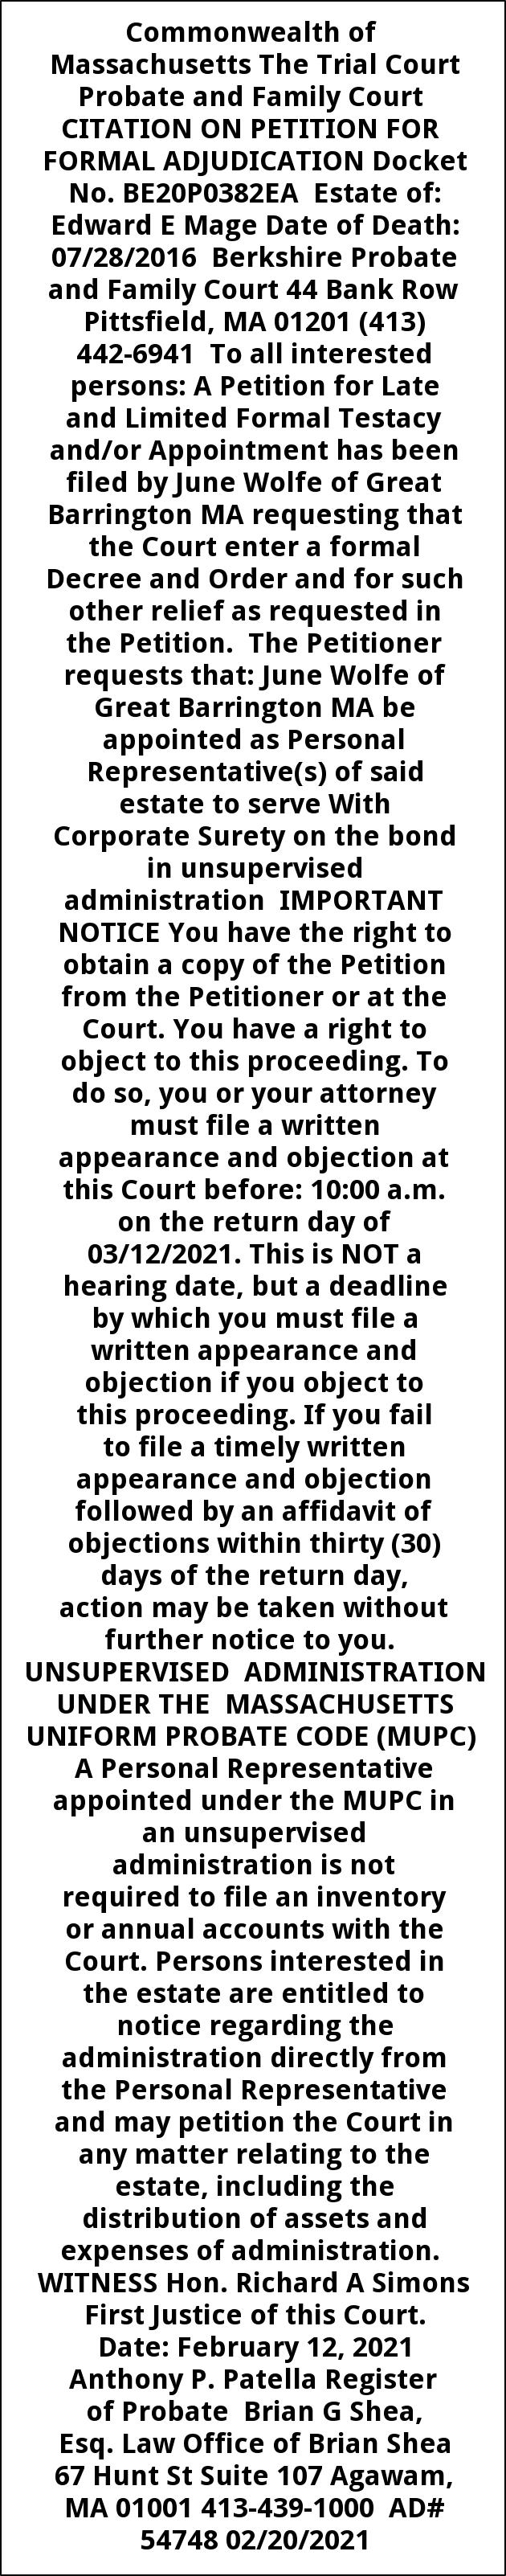 Citation On Petition for Formal Adjudication Docket